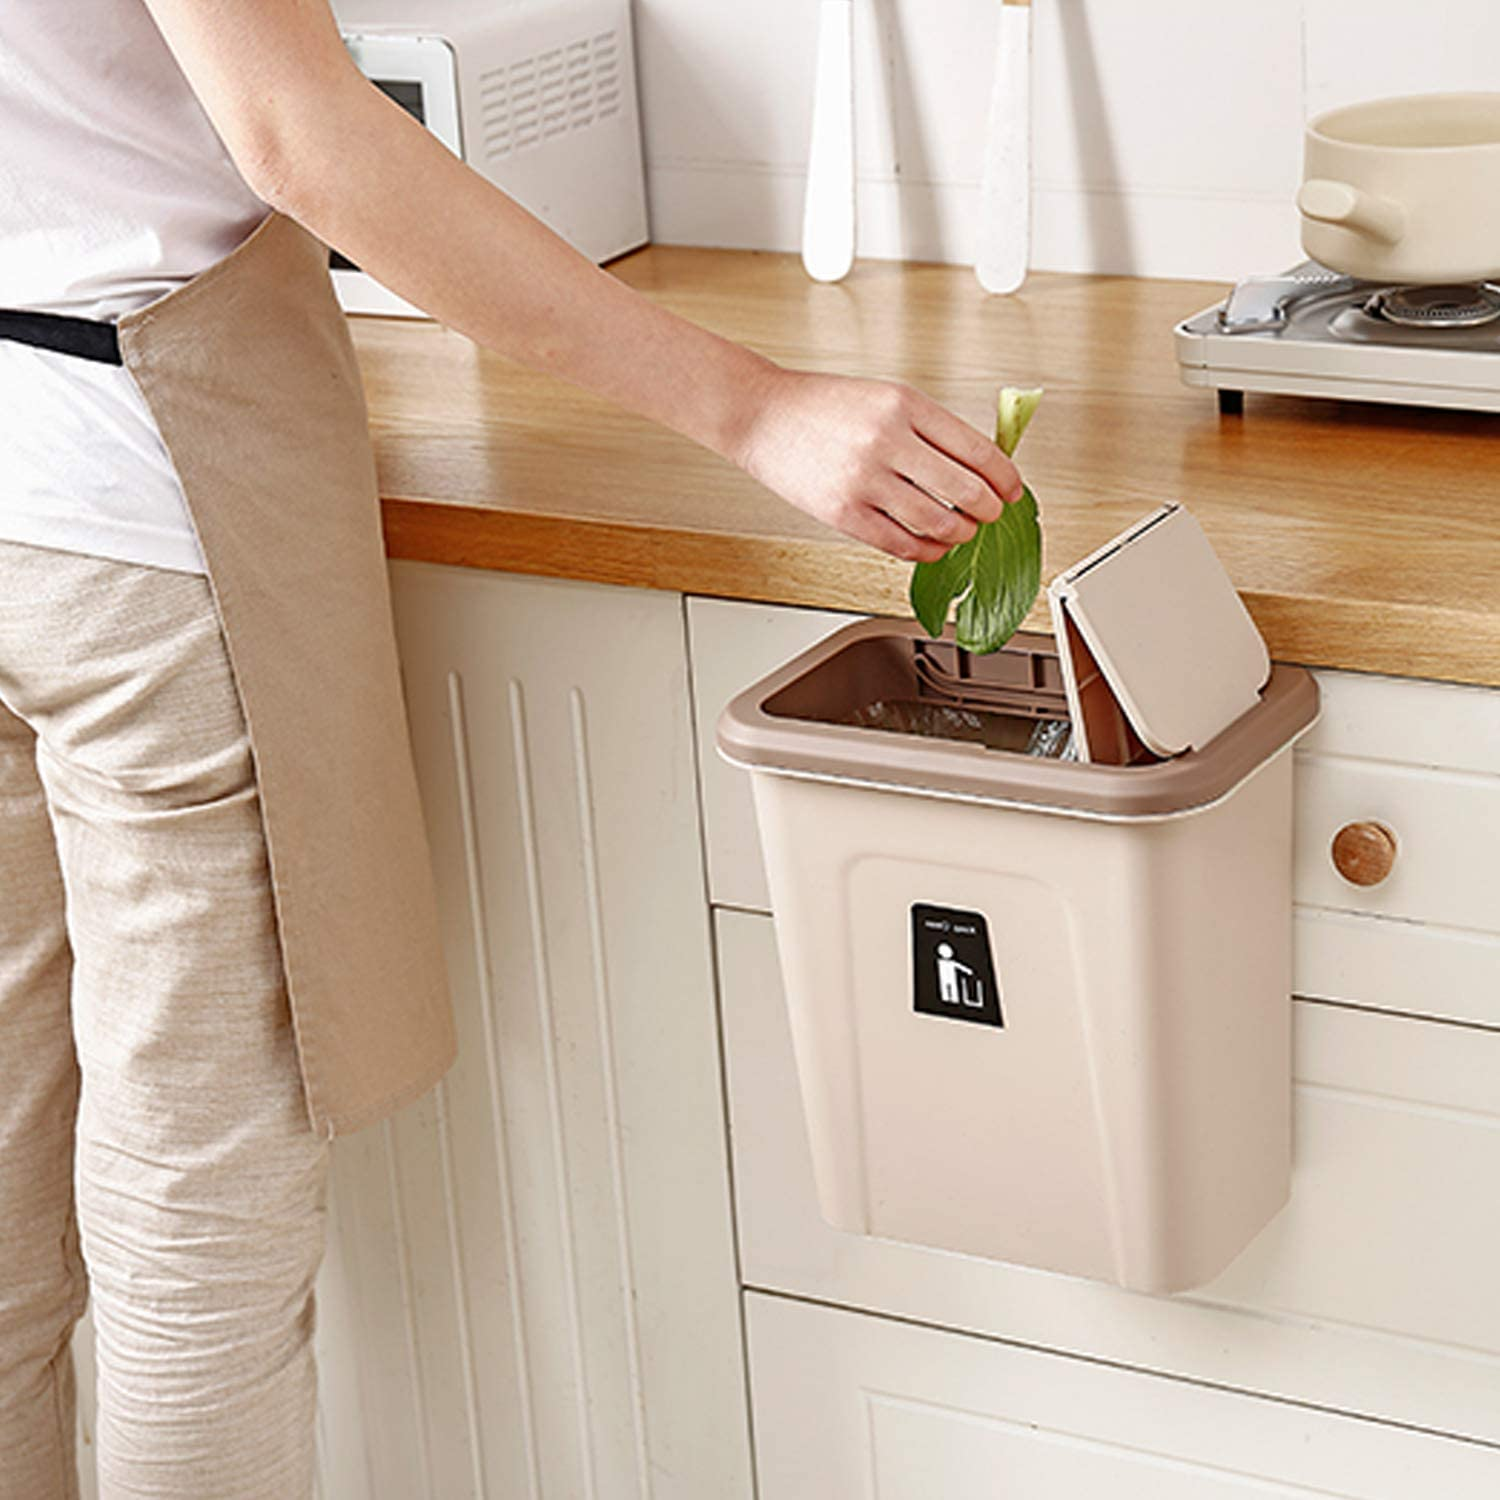 KaryHome Compost Bin Indoor Kitchen Sealed, Compost Bin for Countertop, Hanging Lidded Trash Can for Kitchen Cabinet Door, 2.6 Gallon Brown